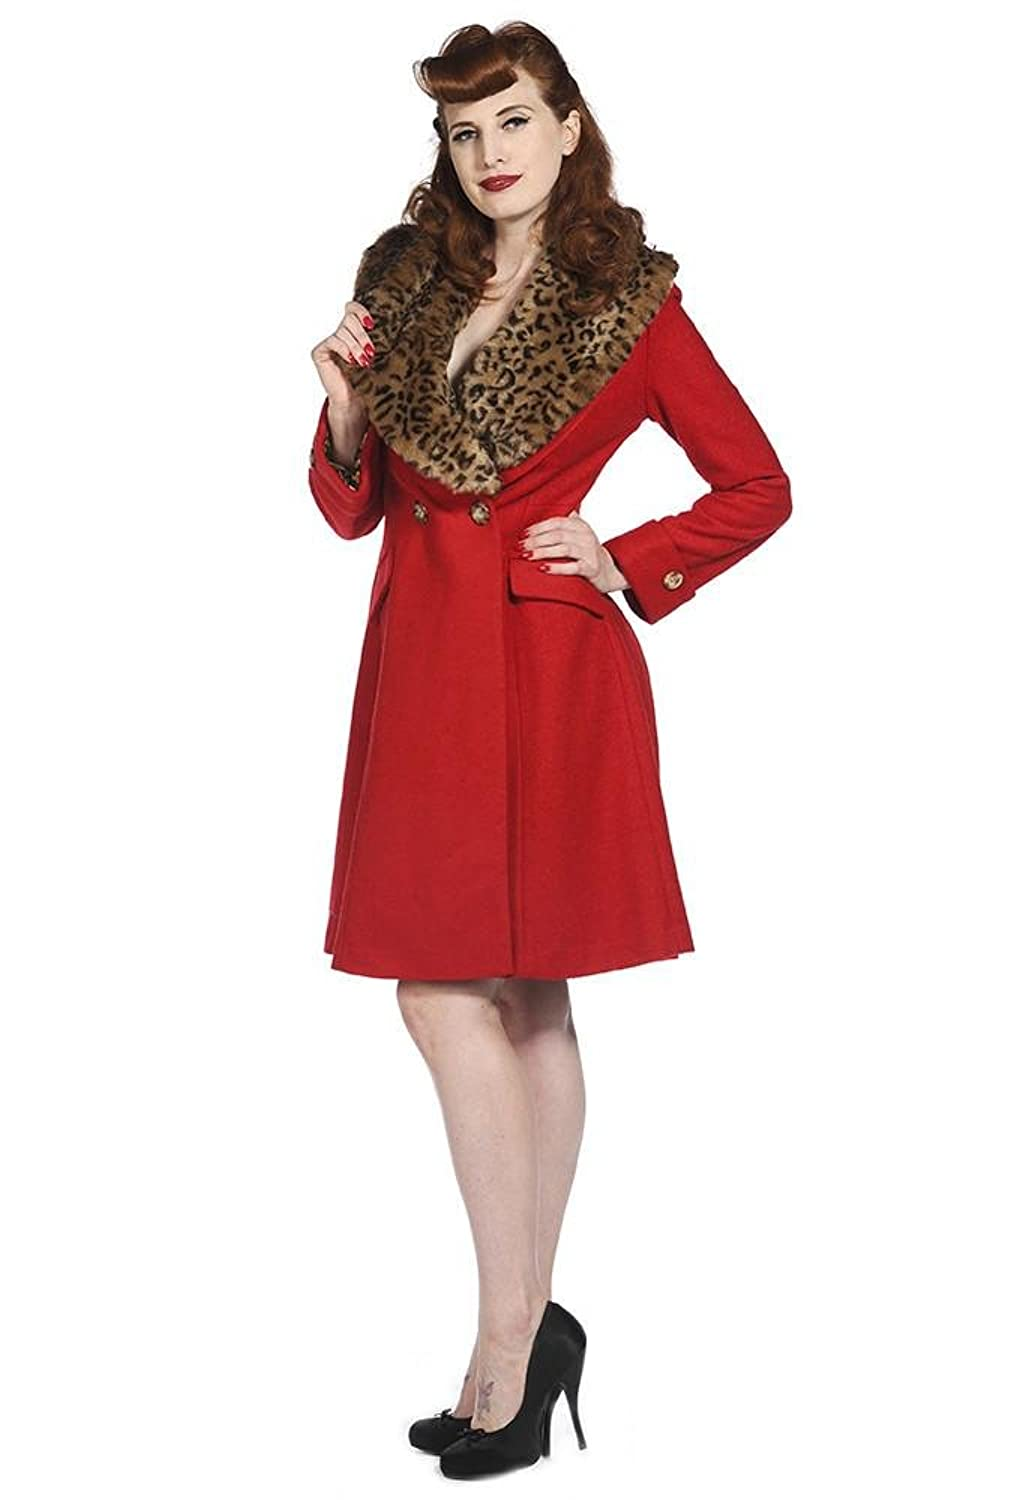 Vintage Coats & Jackets | Retro Coats and Jackets Banned Clothing Red Vintage Coat $157.73 AT vintagedancer.com